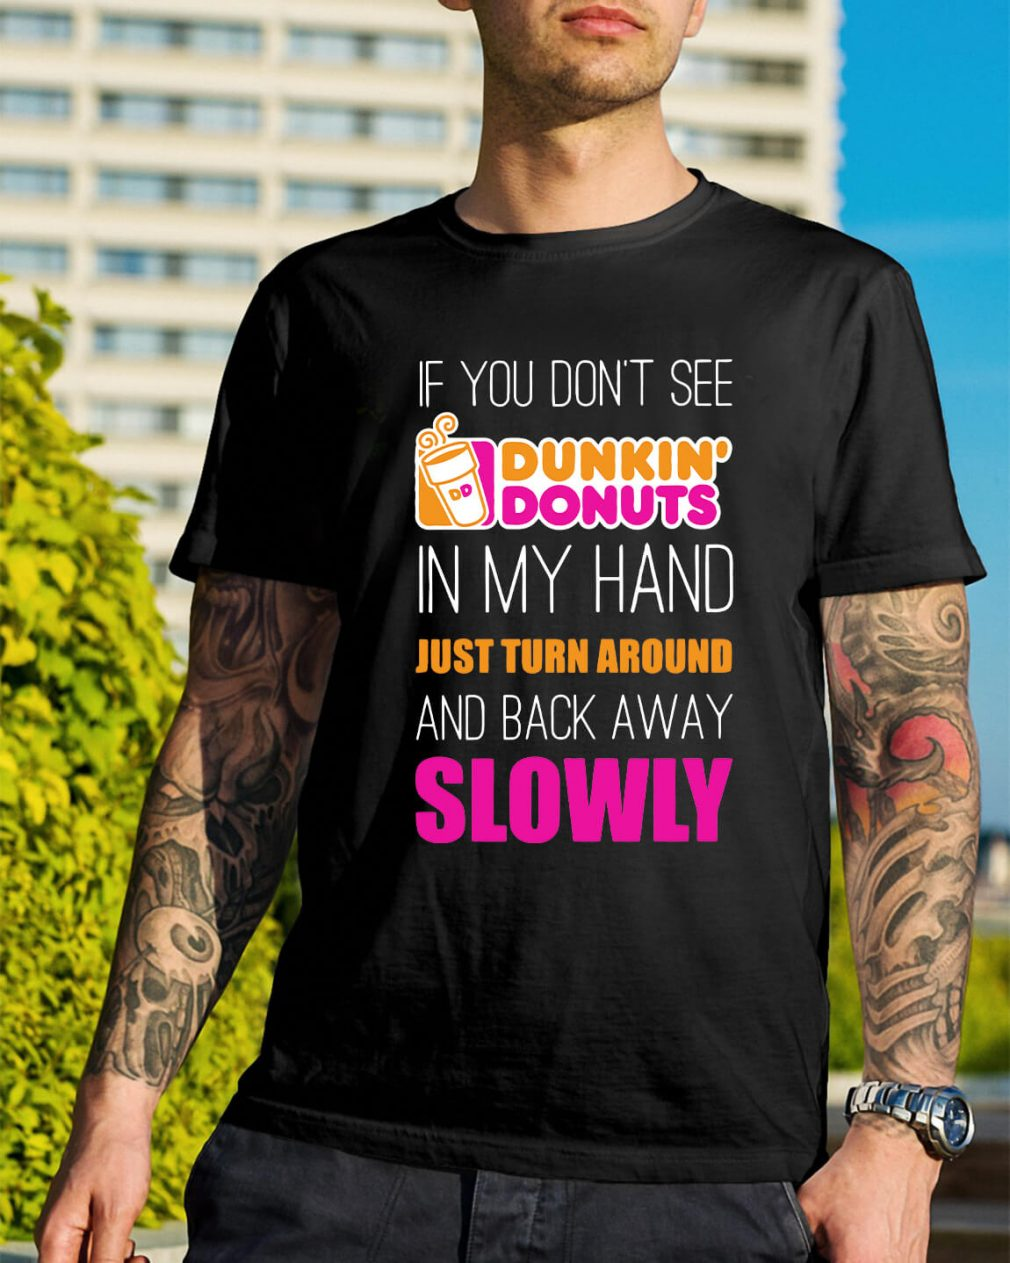 If you don't see Dunkin' Donuts in my hand just turn around shirt